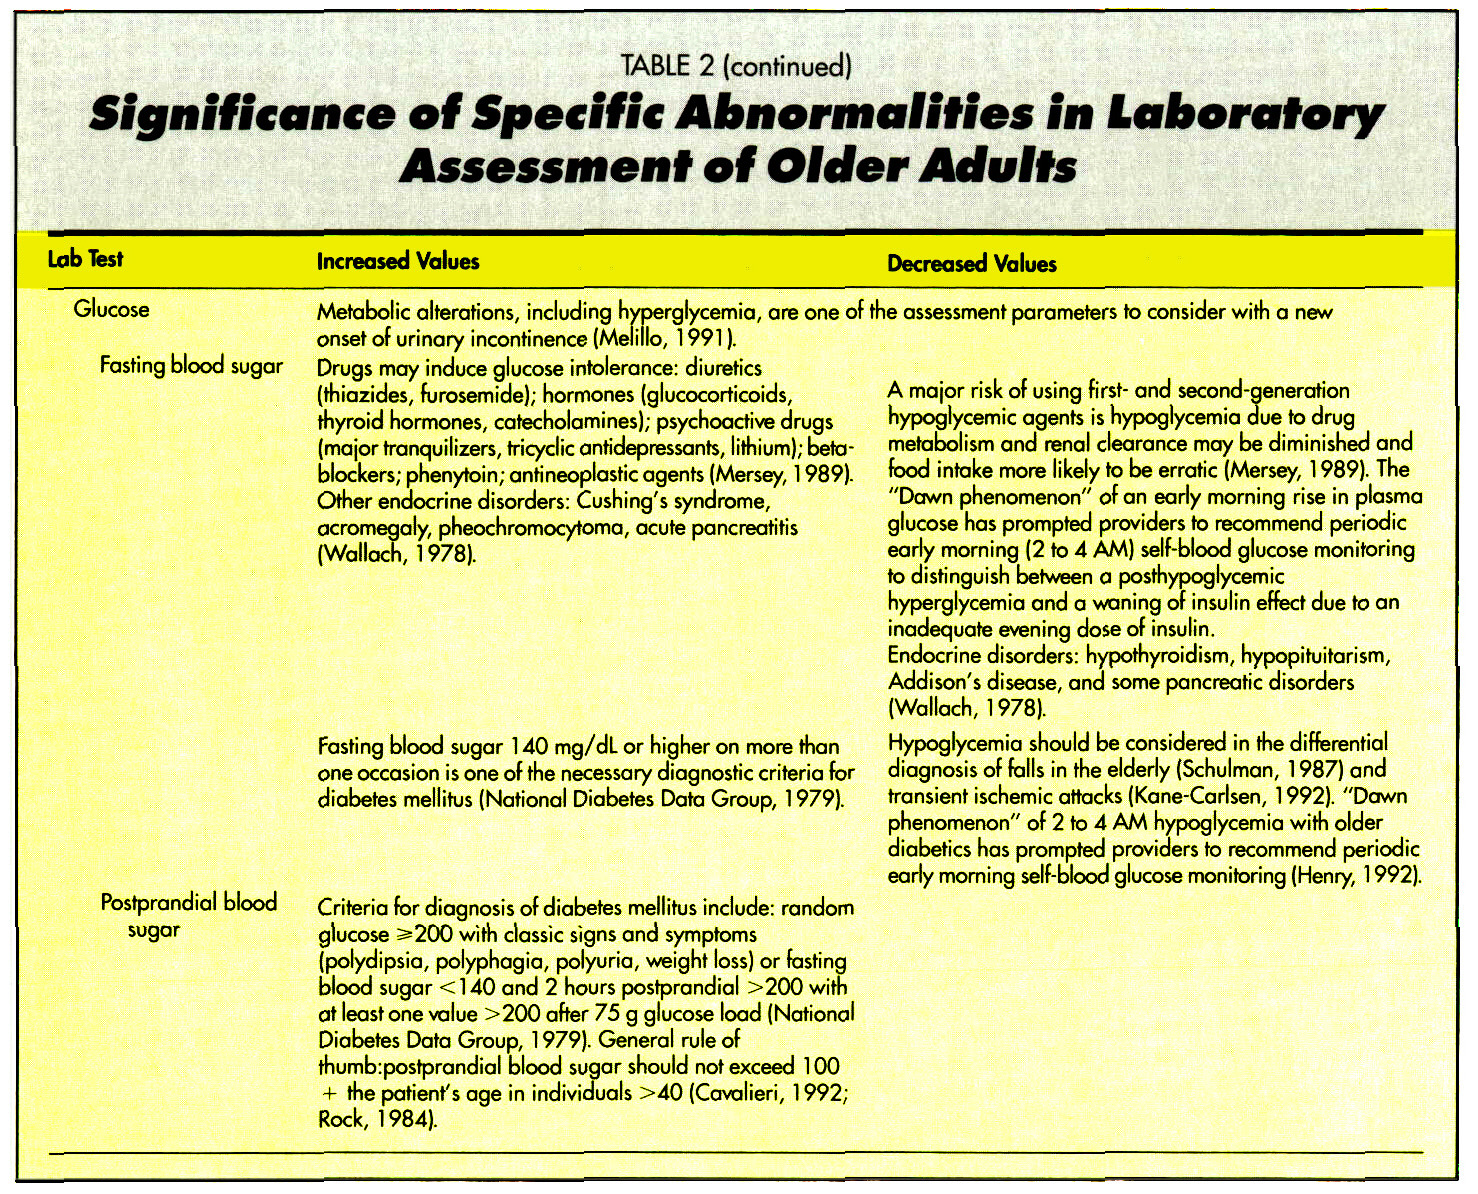 TABLE 2Significance of Specific Abnormalities in Laboratory Assessment of Older Adults